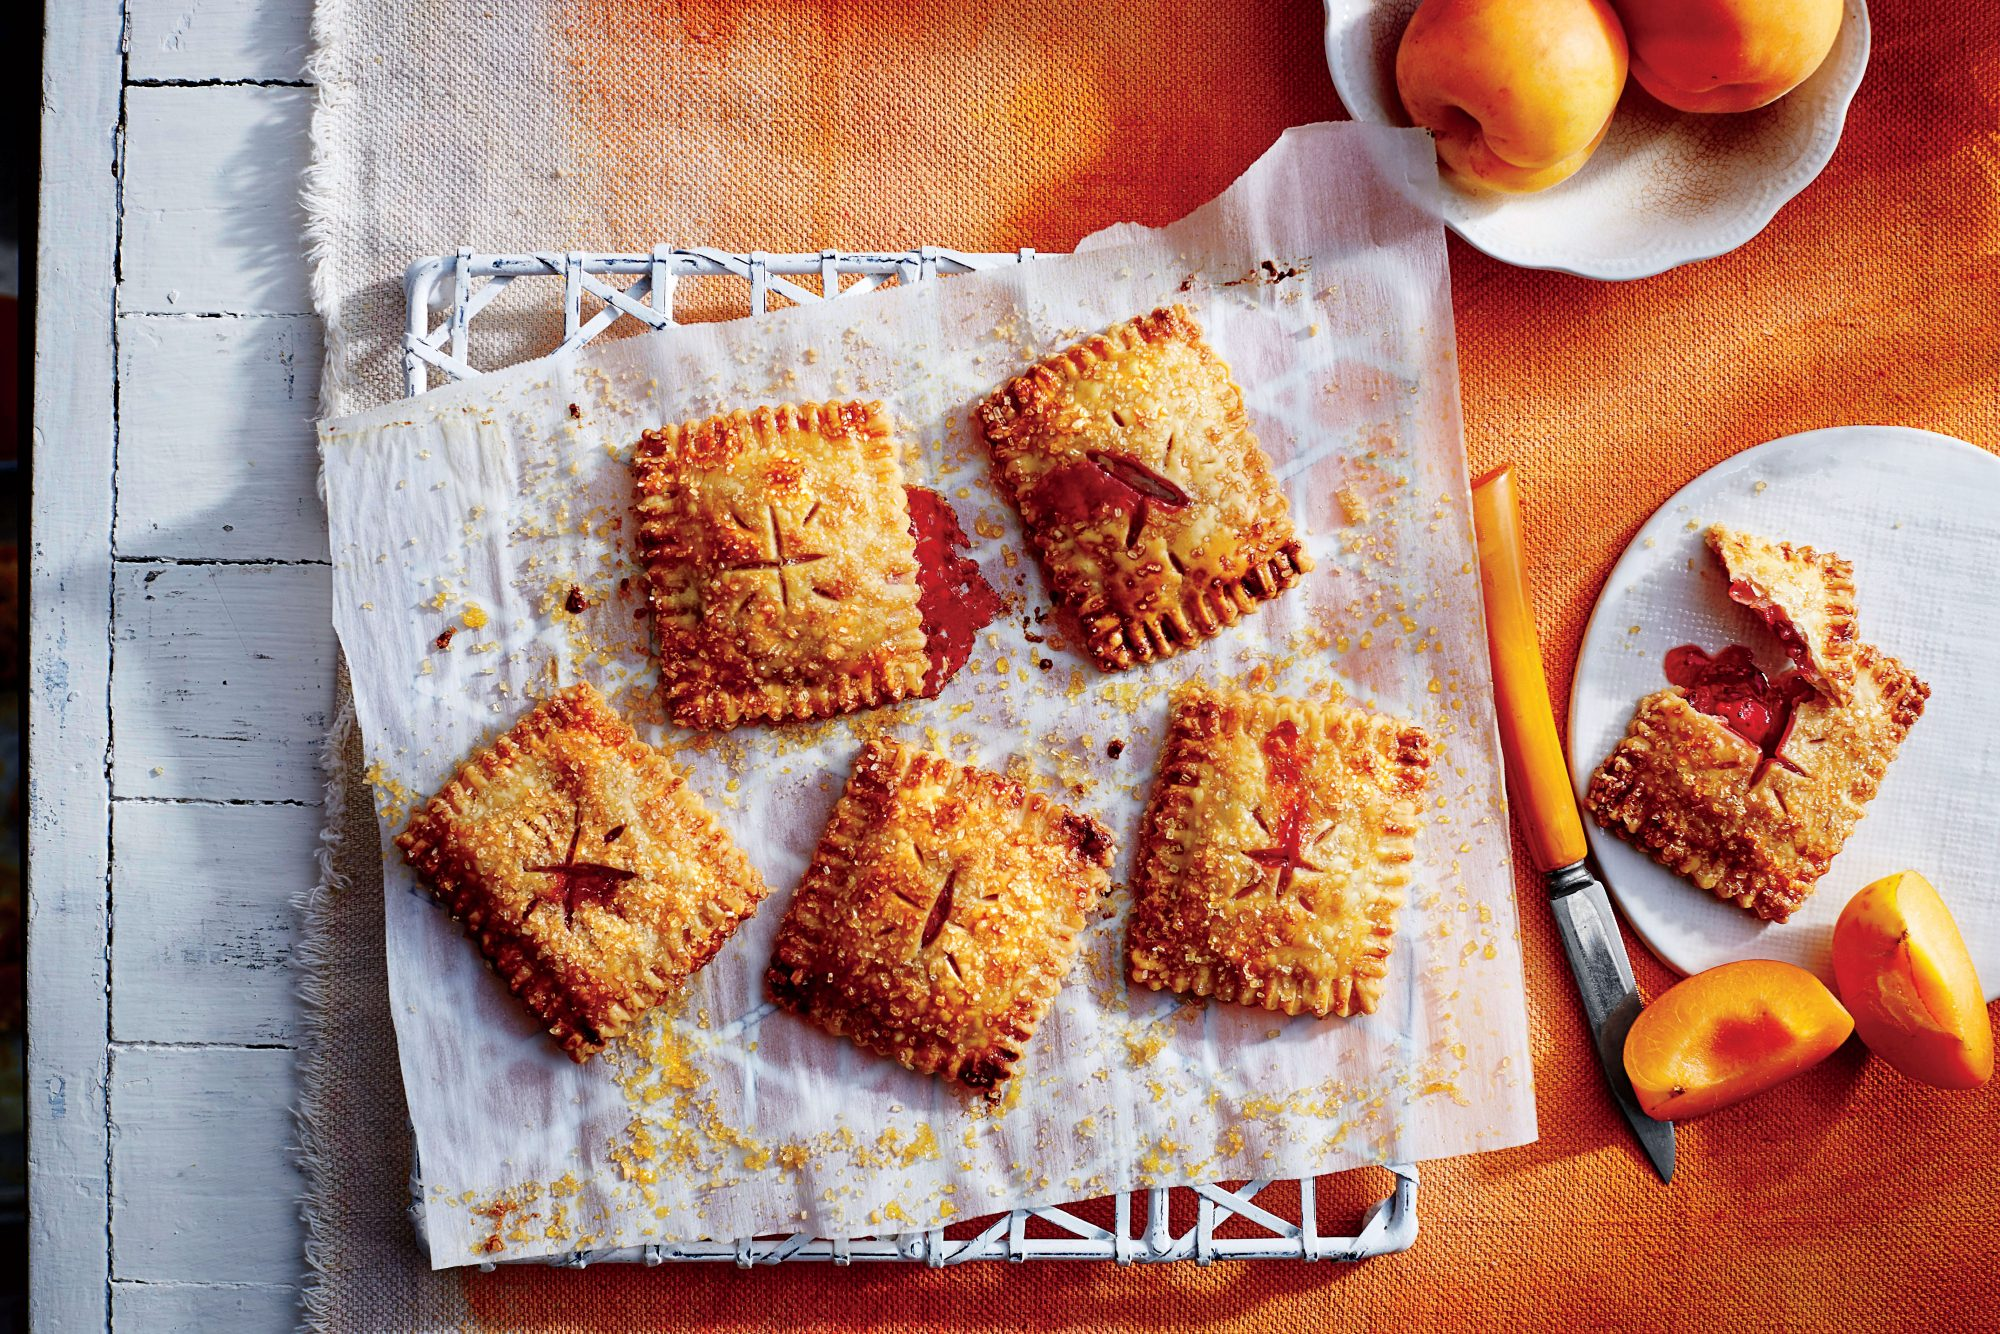 Strawberry-Apricot Hand Pies Recipe Pam Lolley